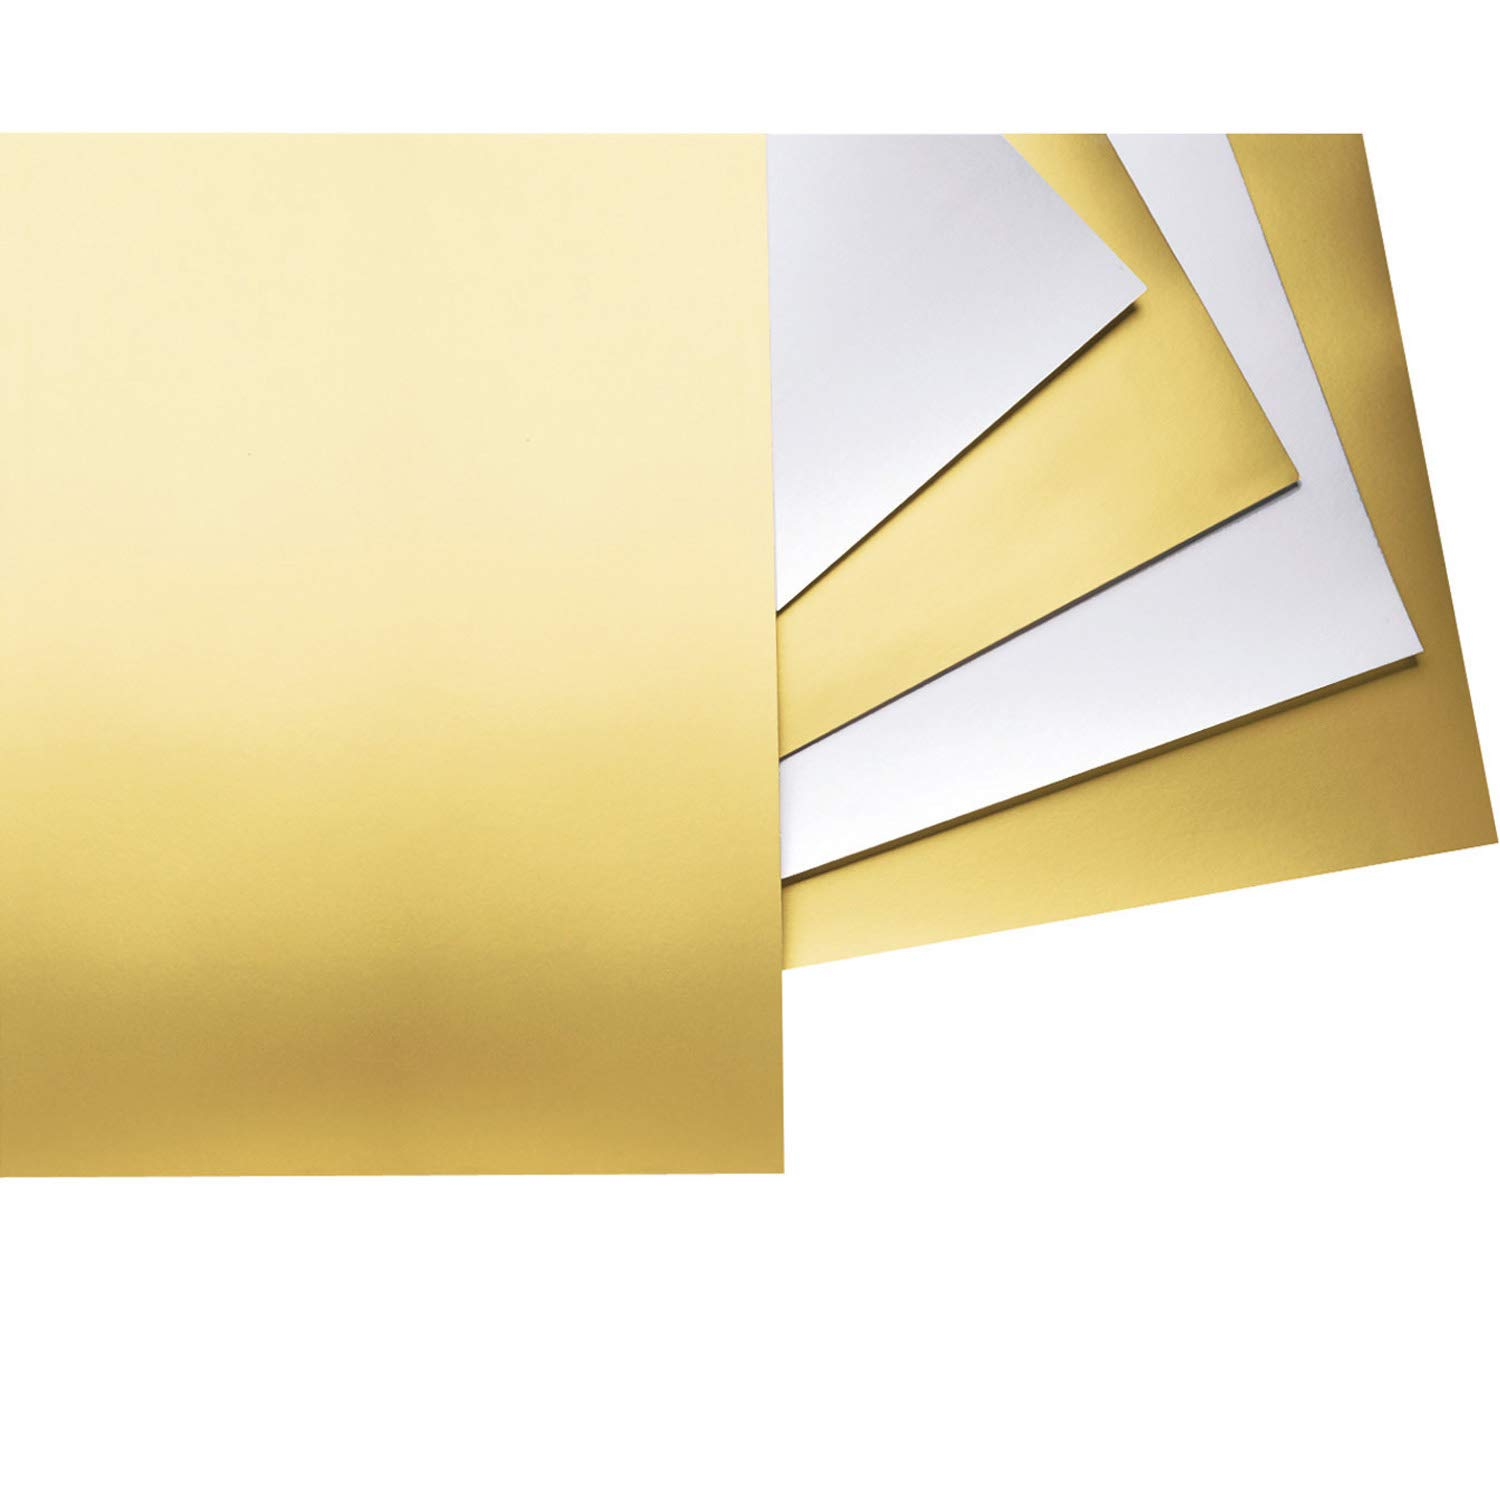 Pacon PAC54981 Poster Board, Gold, 22'' x 28'', 25 Sheets by UCreate